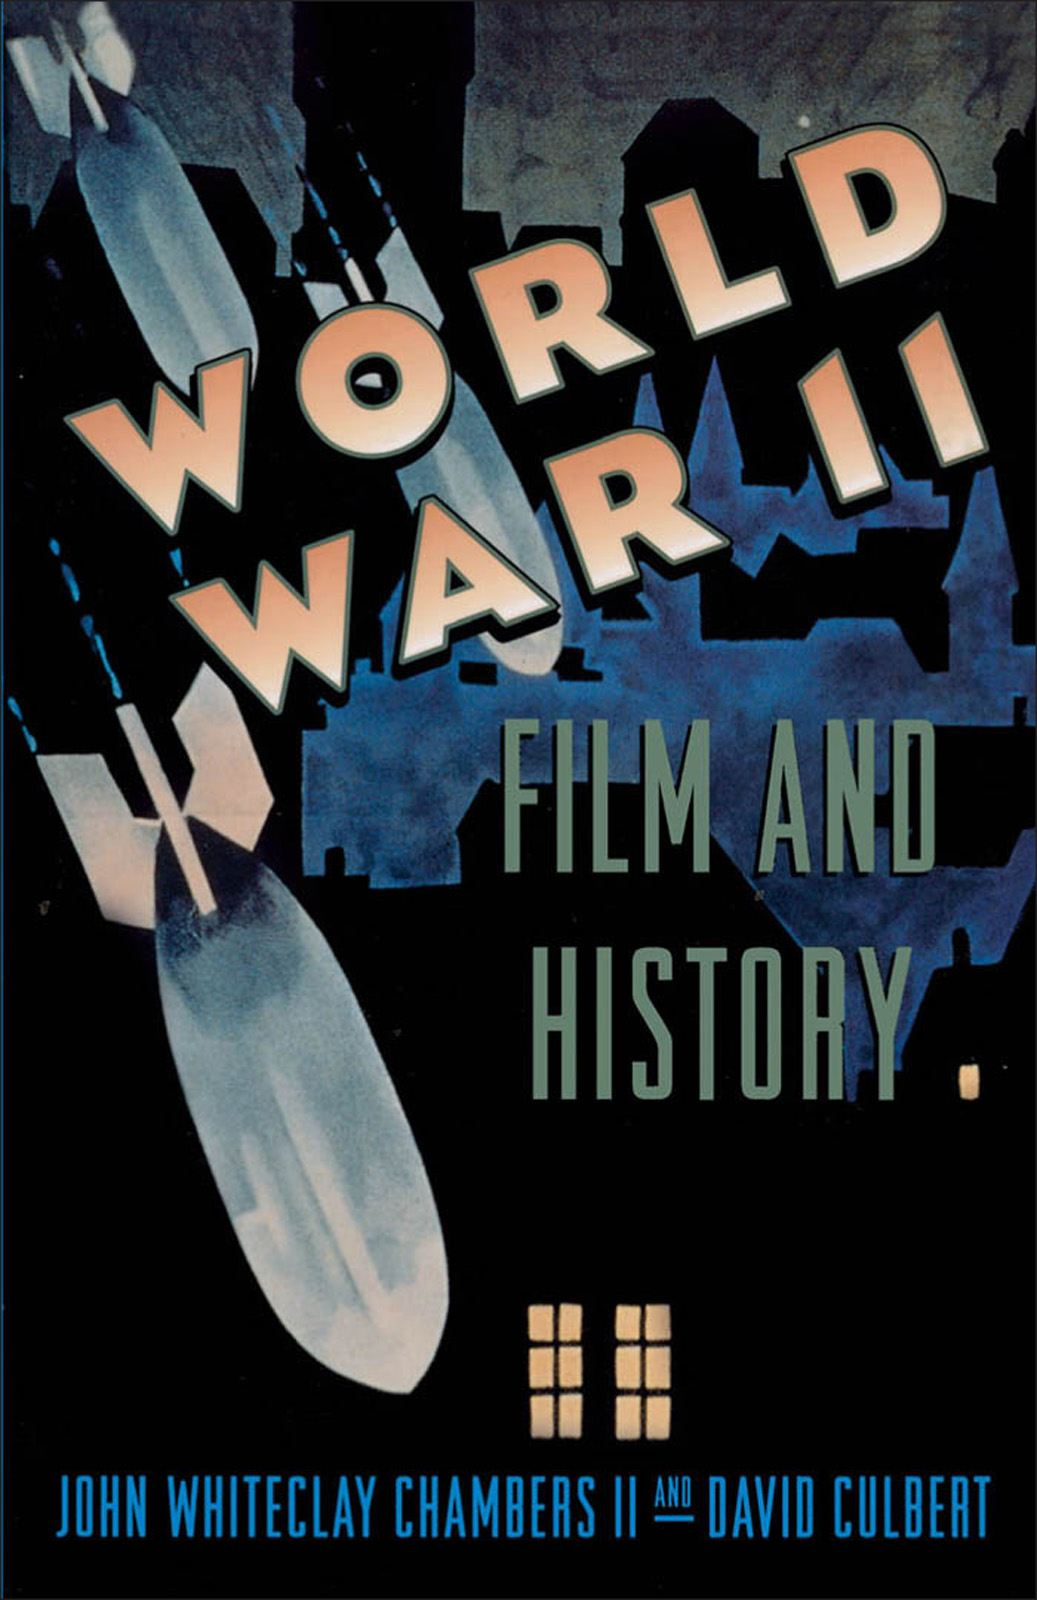 World War II Film and History